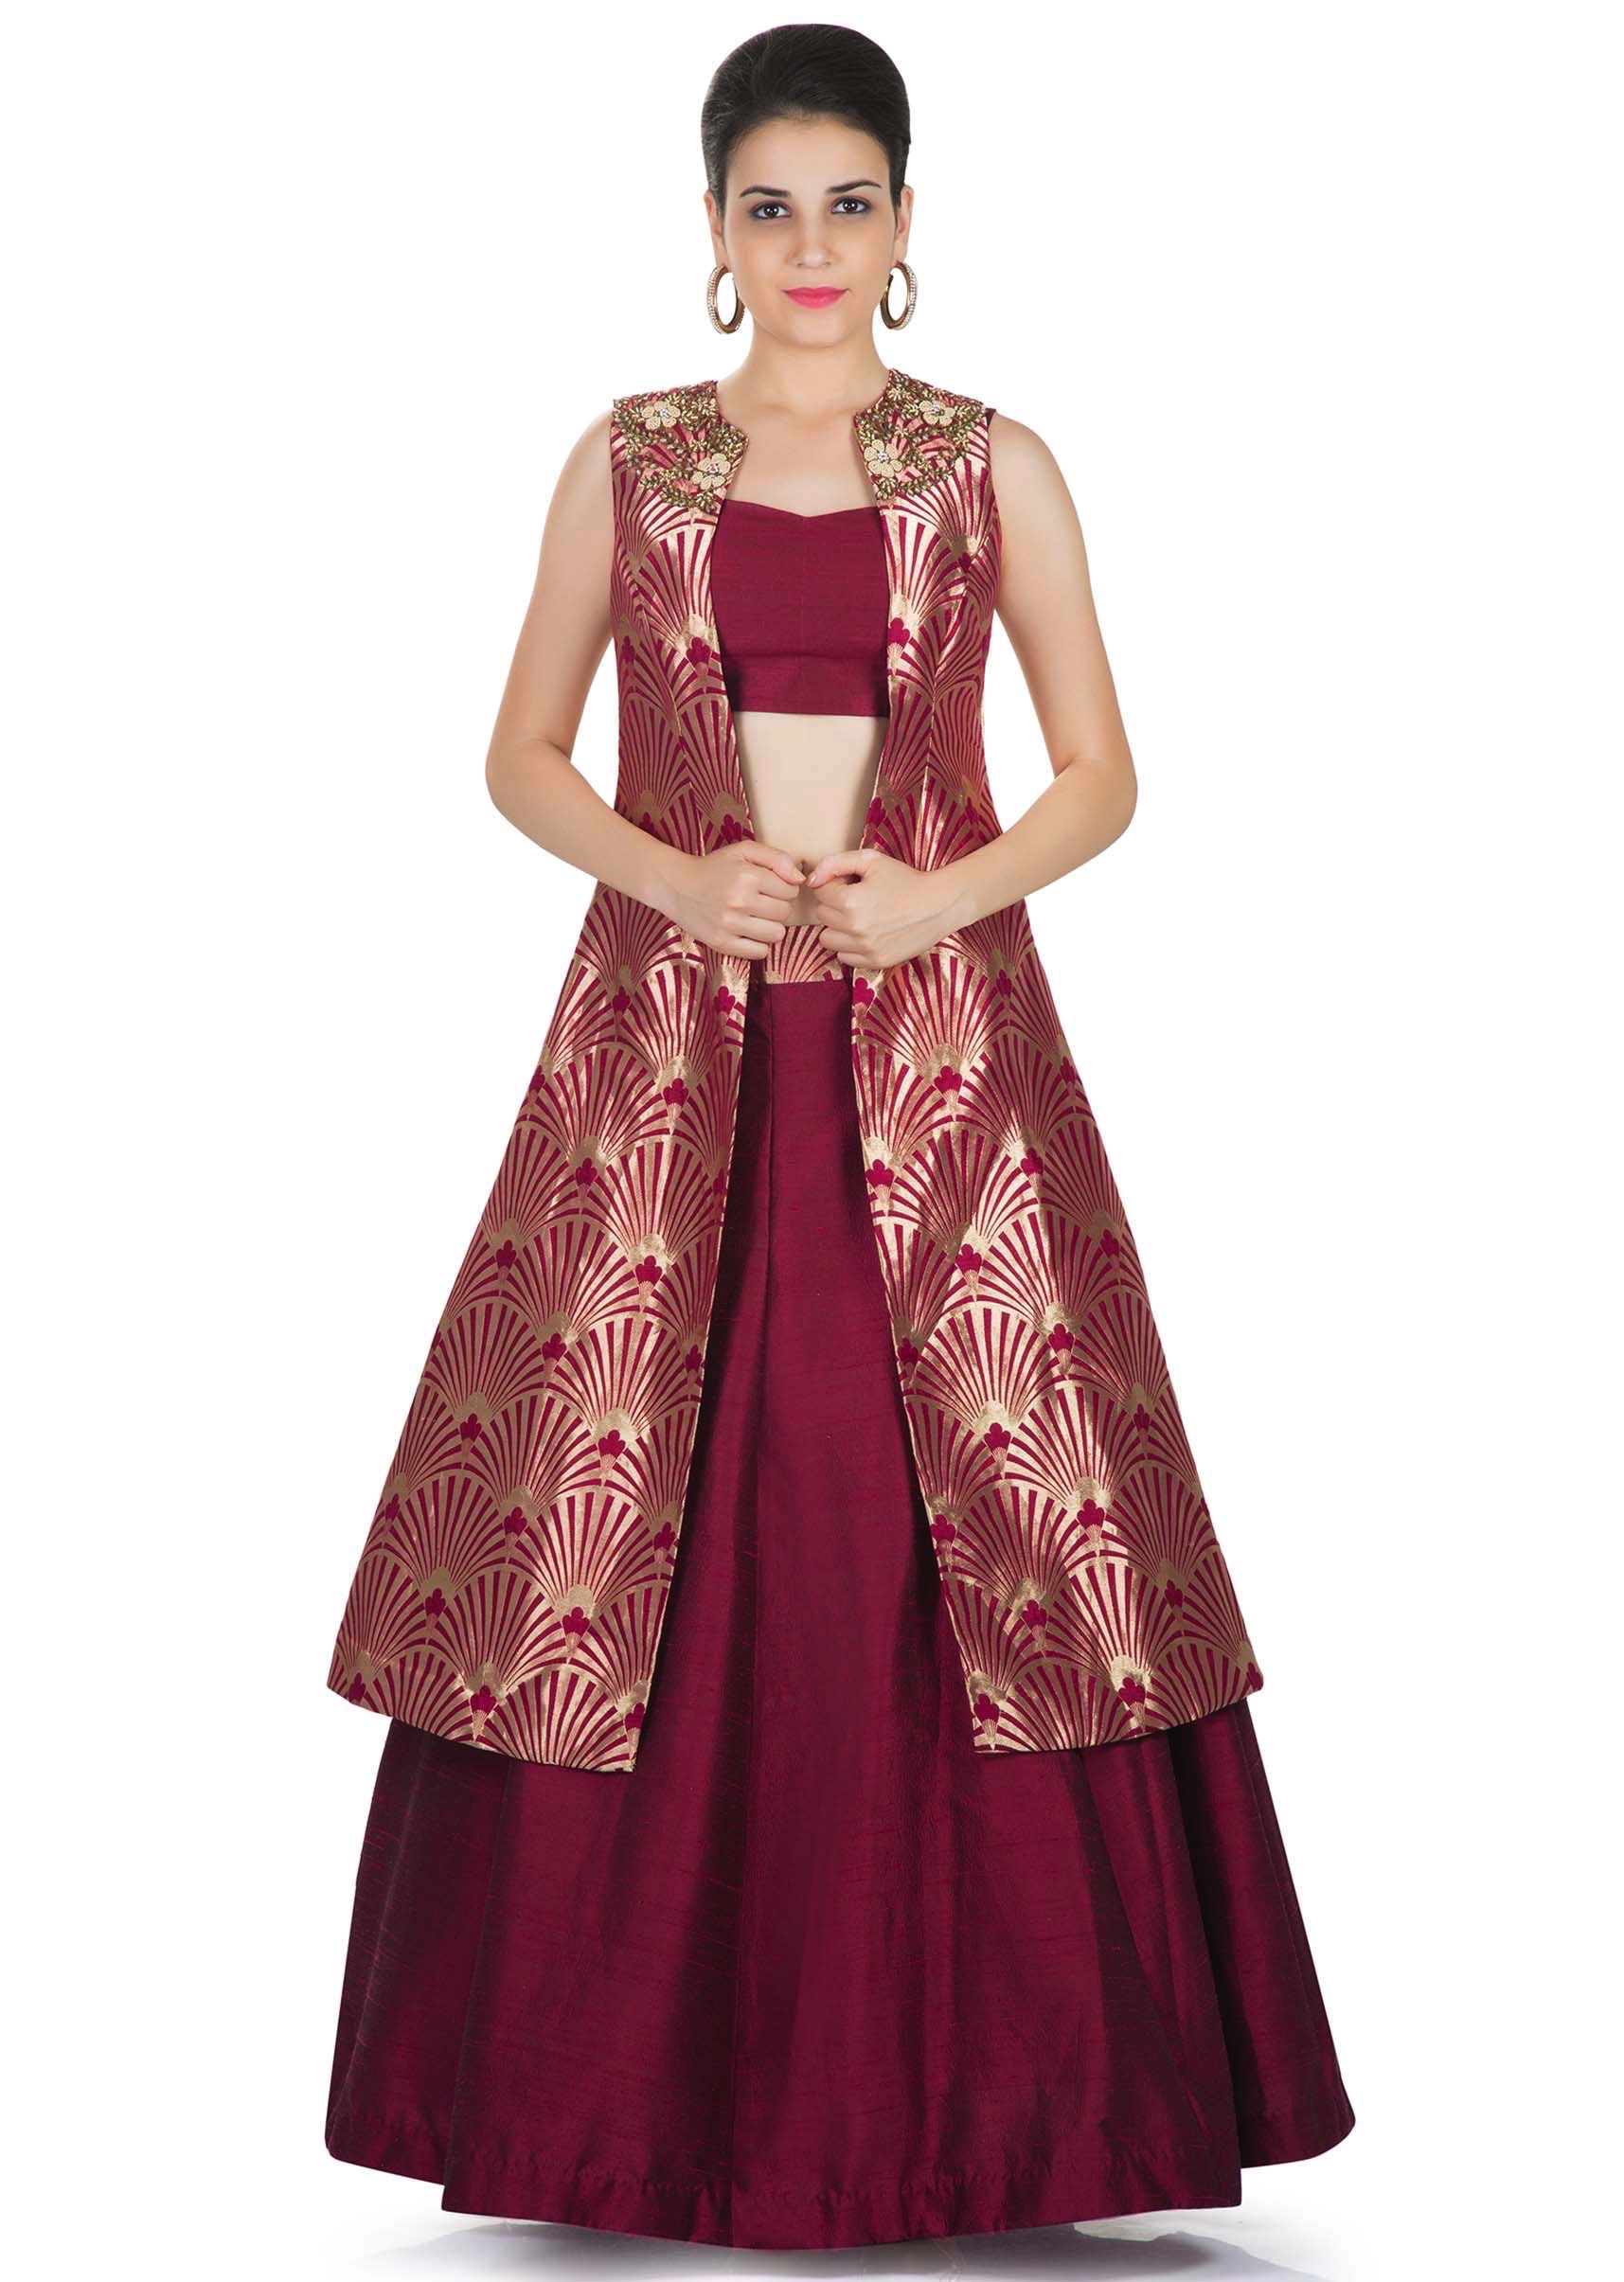 brand new designer fashion ever popular Maroon Skirt and Blouse Styled with Banarasi Brocade Jacket